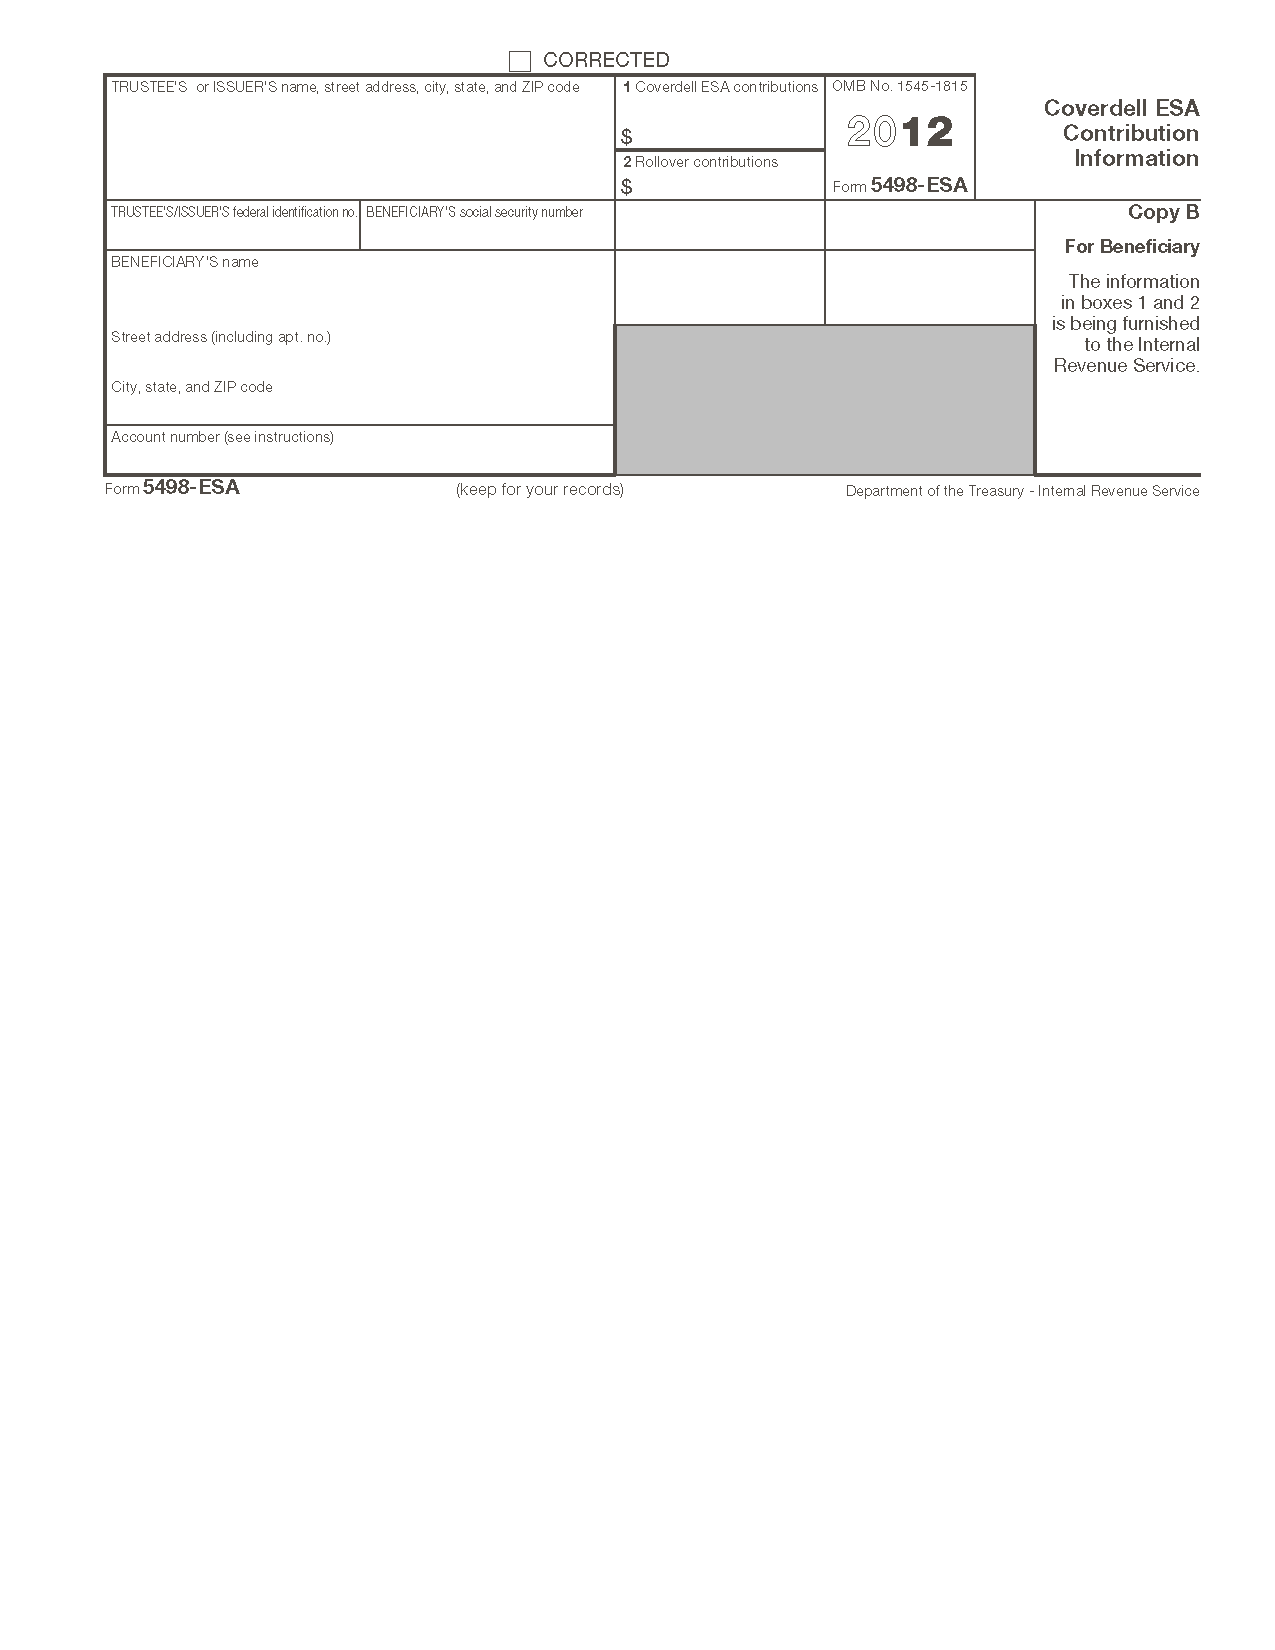 Form 5498-ESA Coverdell ESA Contribution Information (Info Copy Only)